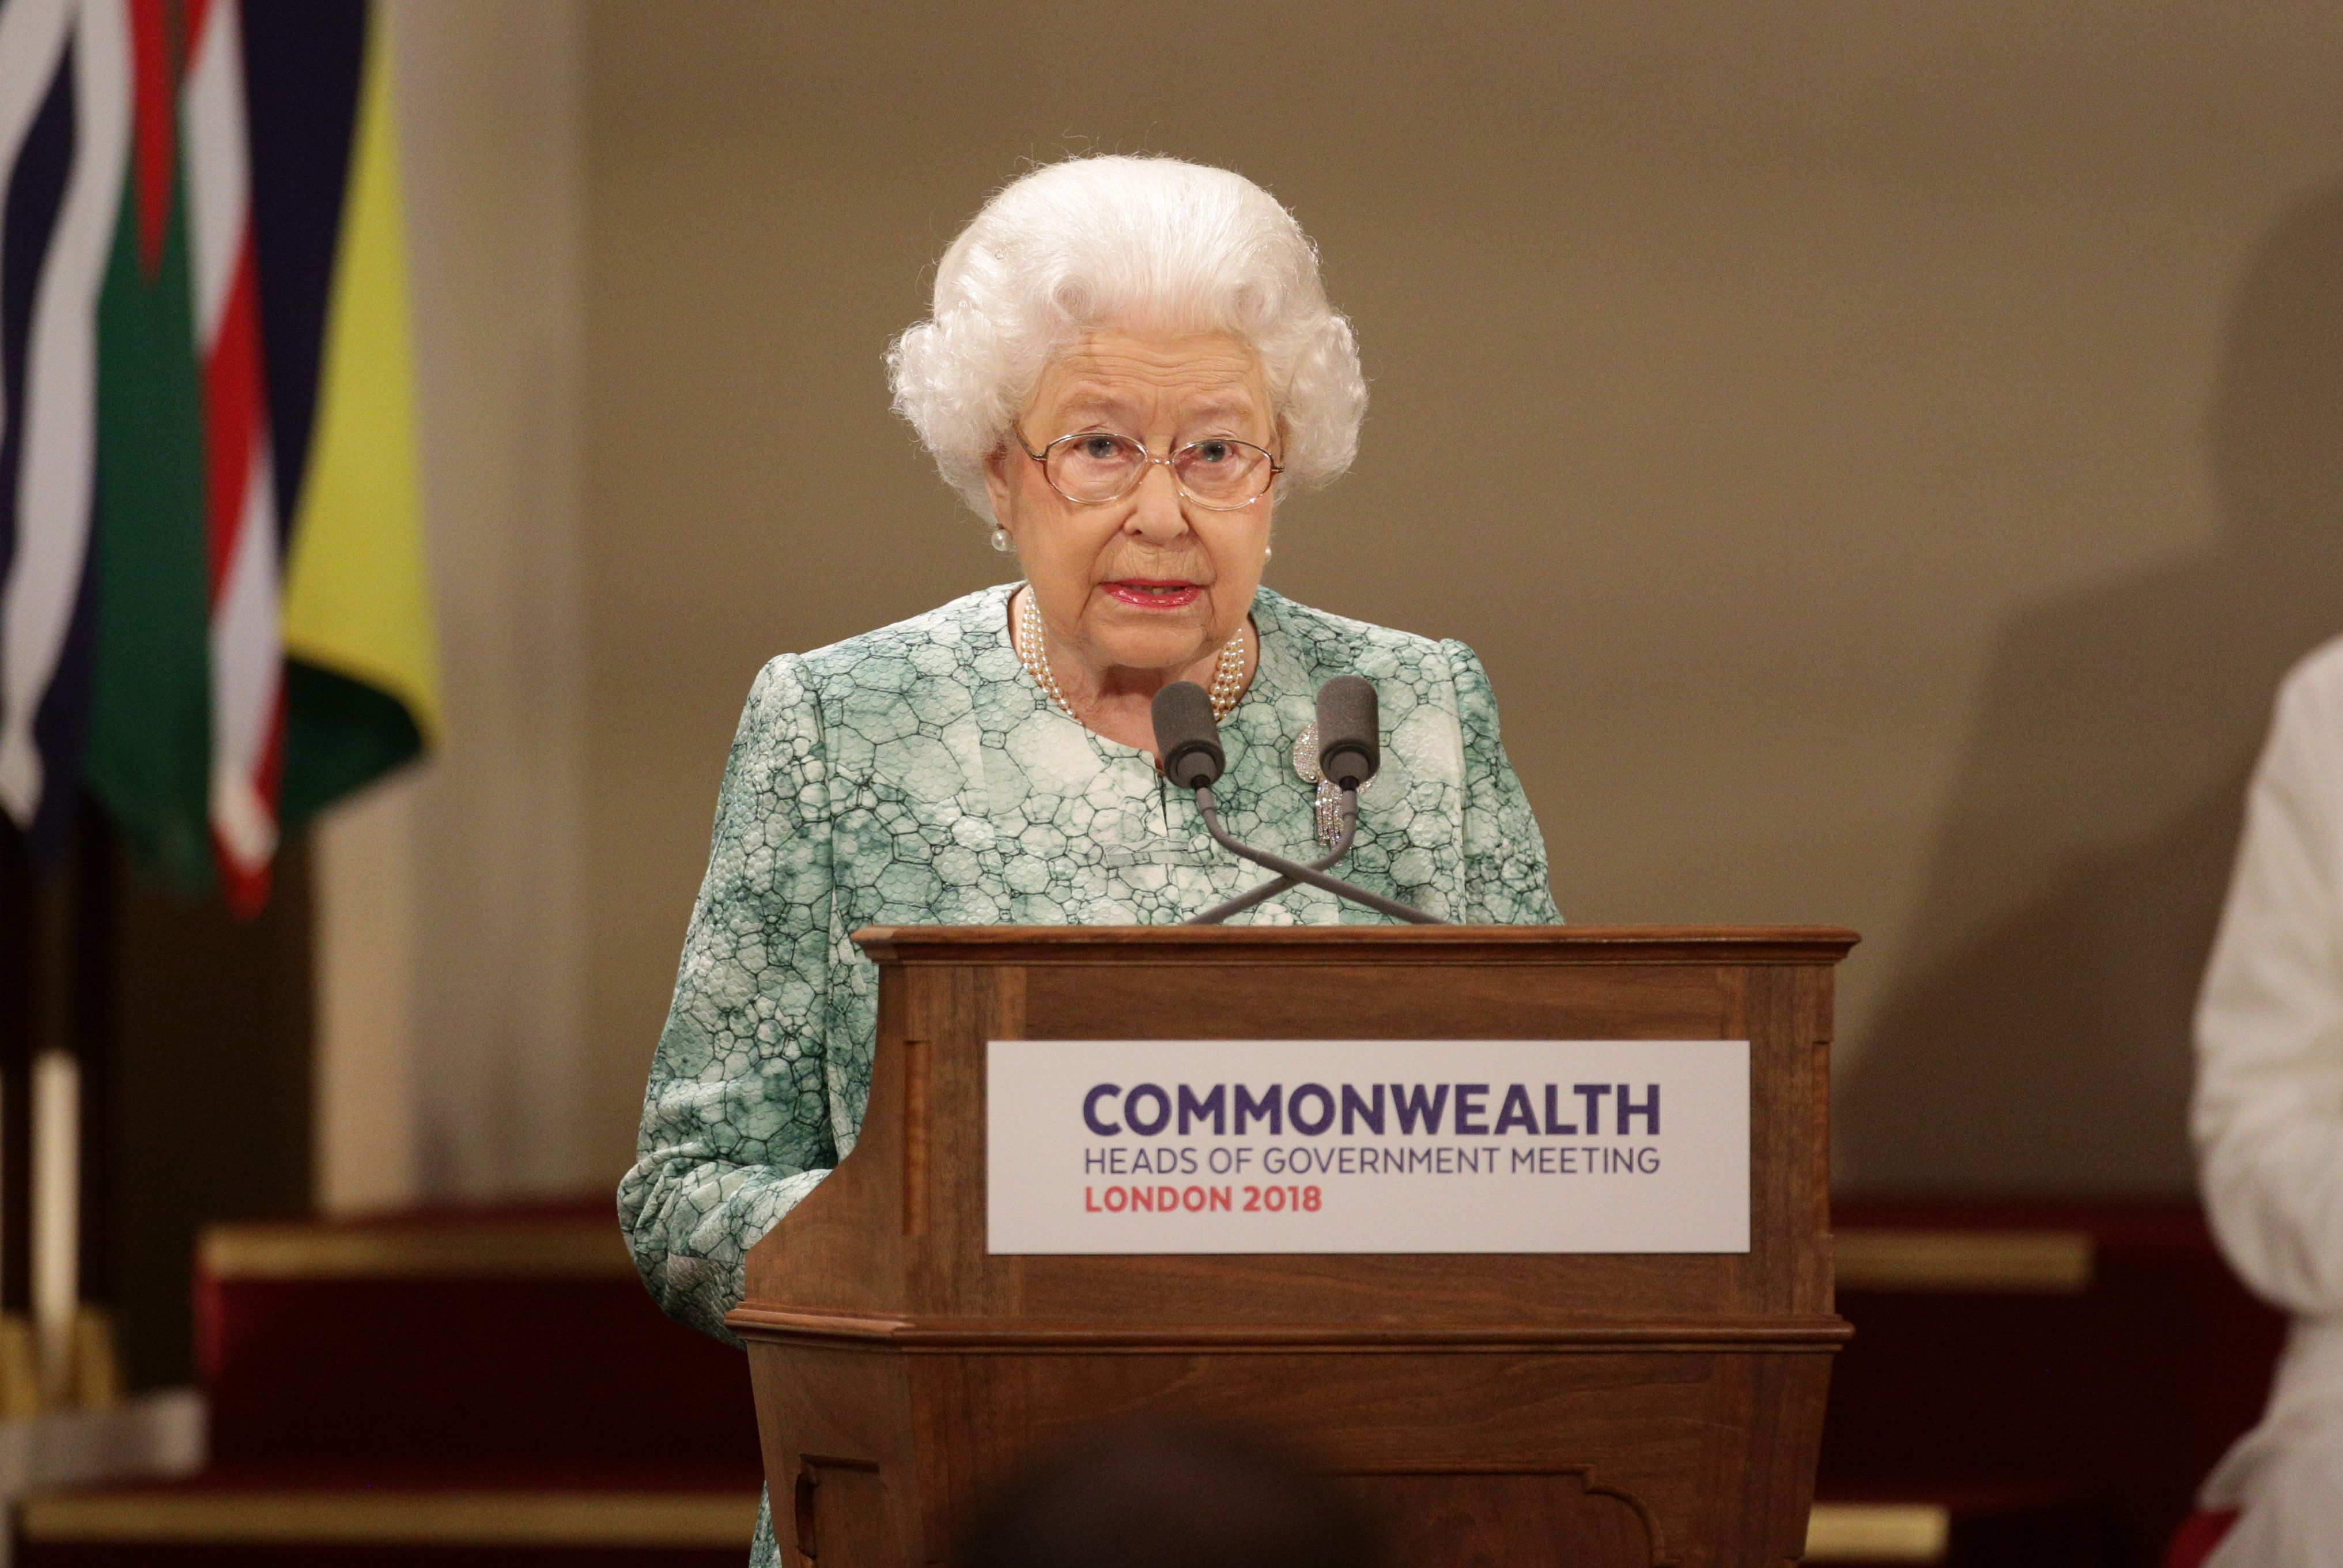 LONDON, ENGLAND - APRIL 19: Queen Elizabeth II gives a speech at the formal opening of the Commonwealth Heads of Government Meeting (CHOGM) in the ballroom at Buckingham Palace on April 19, 2018, in London, England.  (Photo by Yui Mok-WPA Pool/Getty Images)